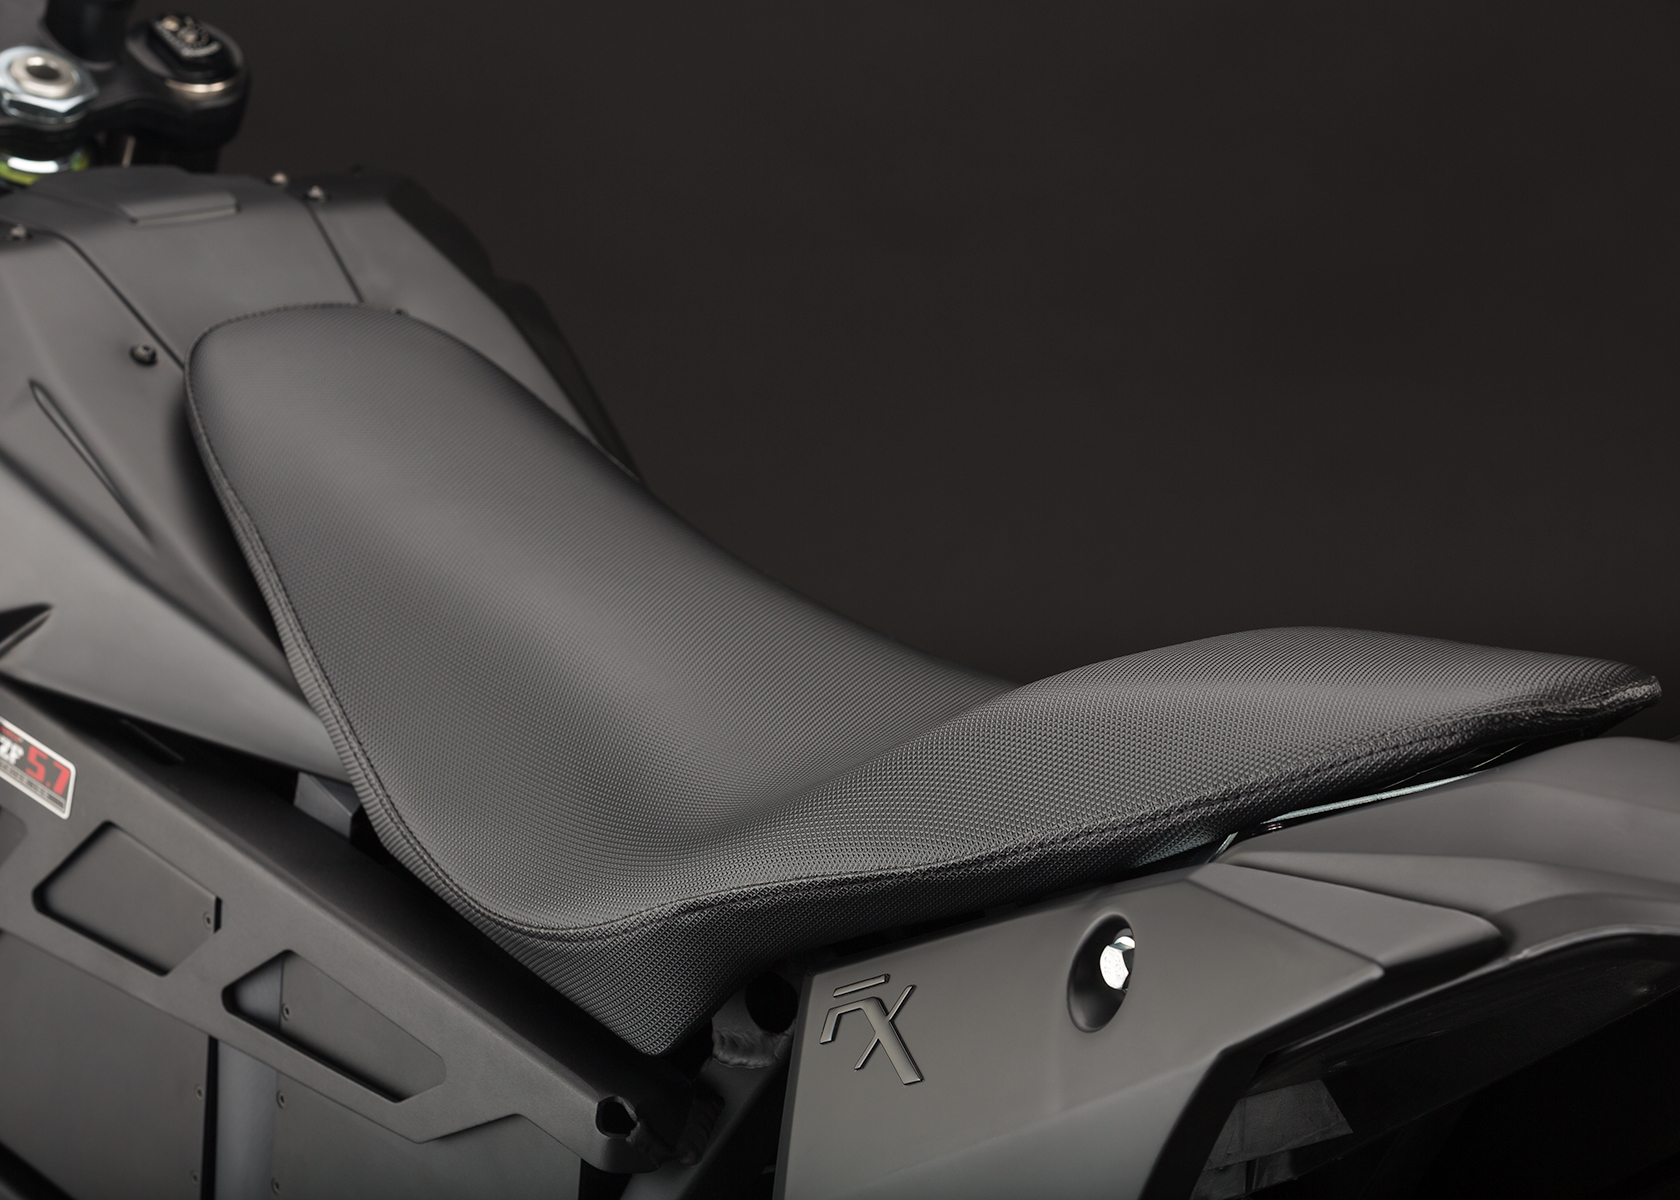 2014 Zero FX Electric Motorcycle: Seat